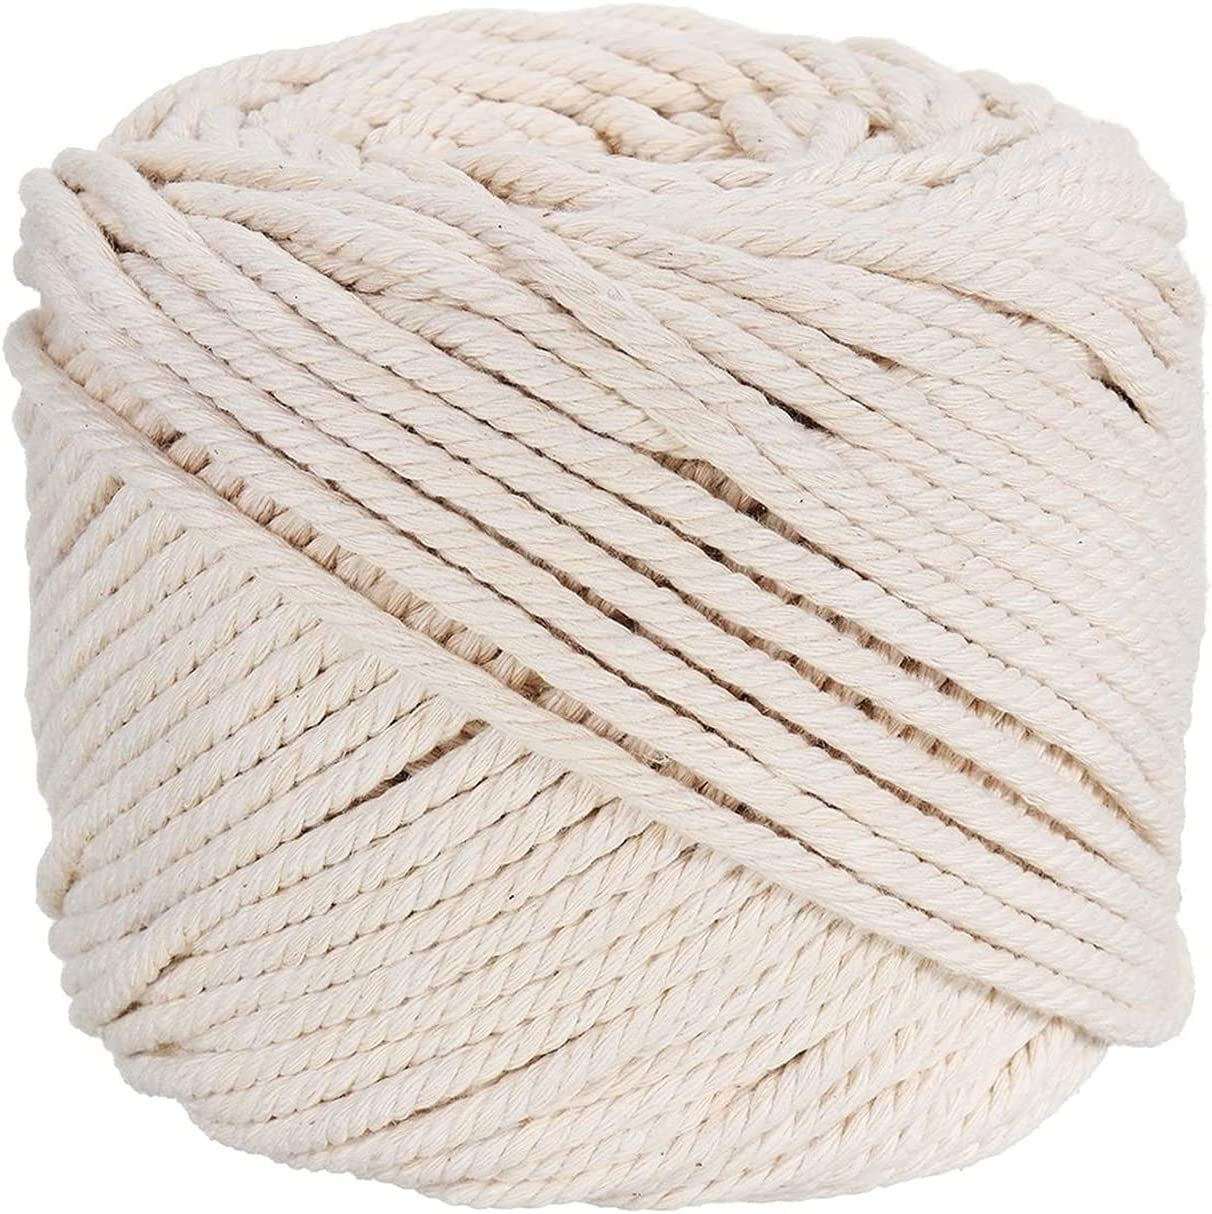 ZYQXB Cotton Manufacturer regenerated product Twisted Rope Award-winning store DIY Lace Home Craft Textile Handm